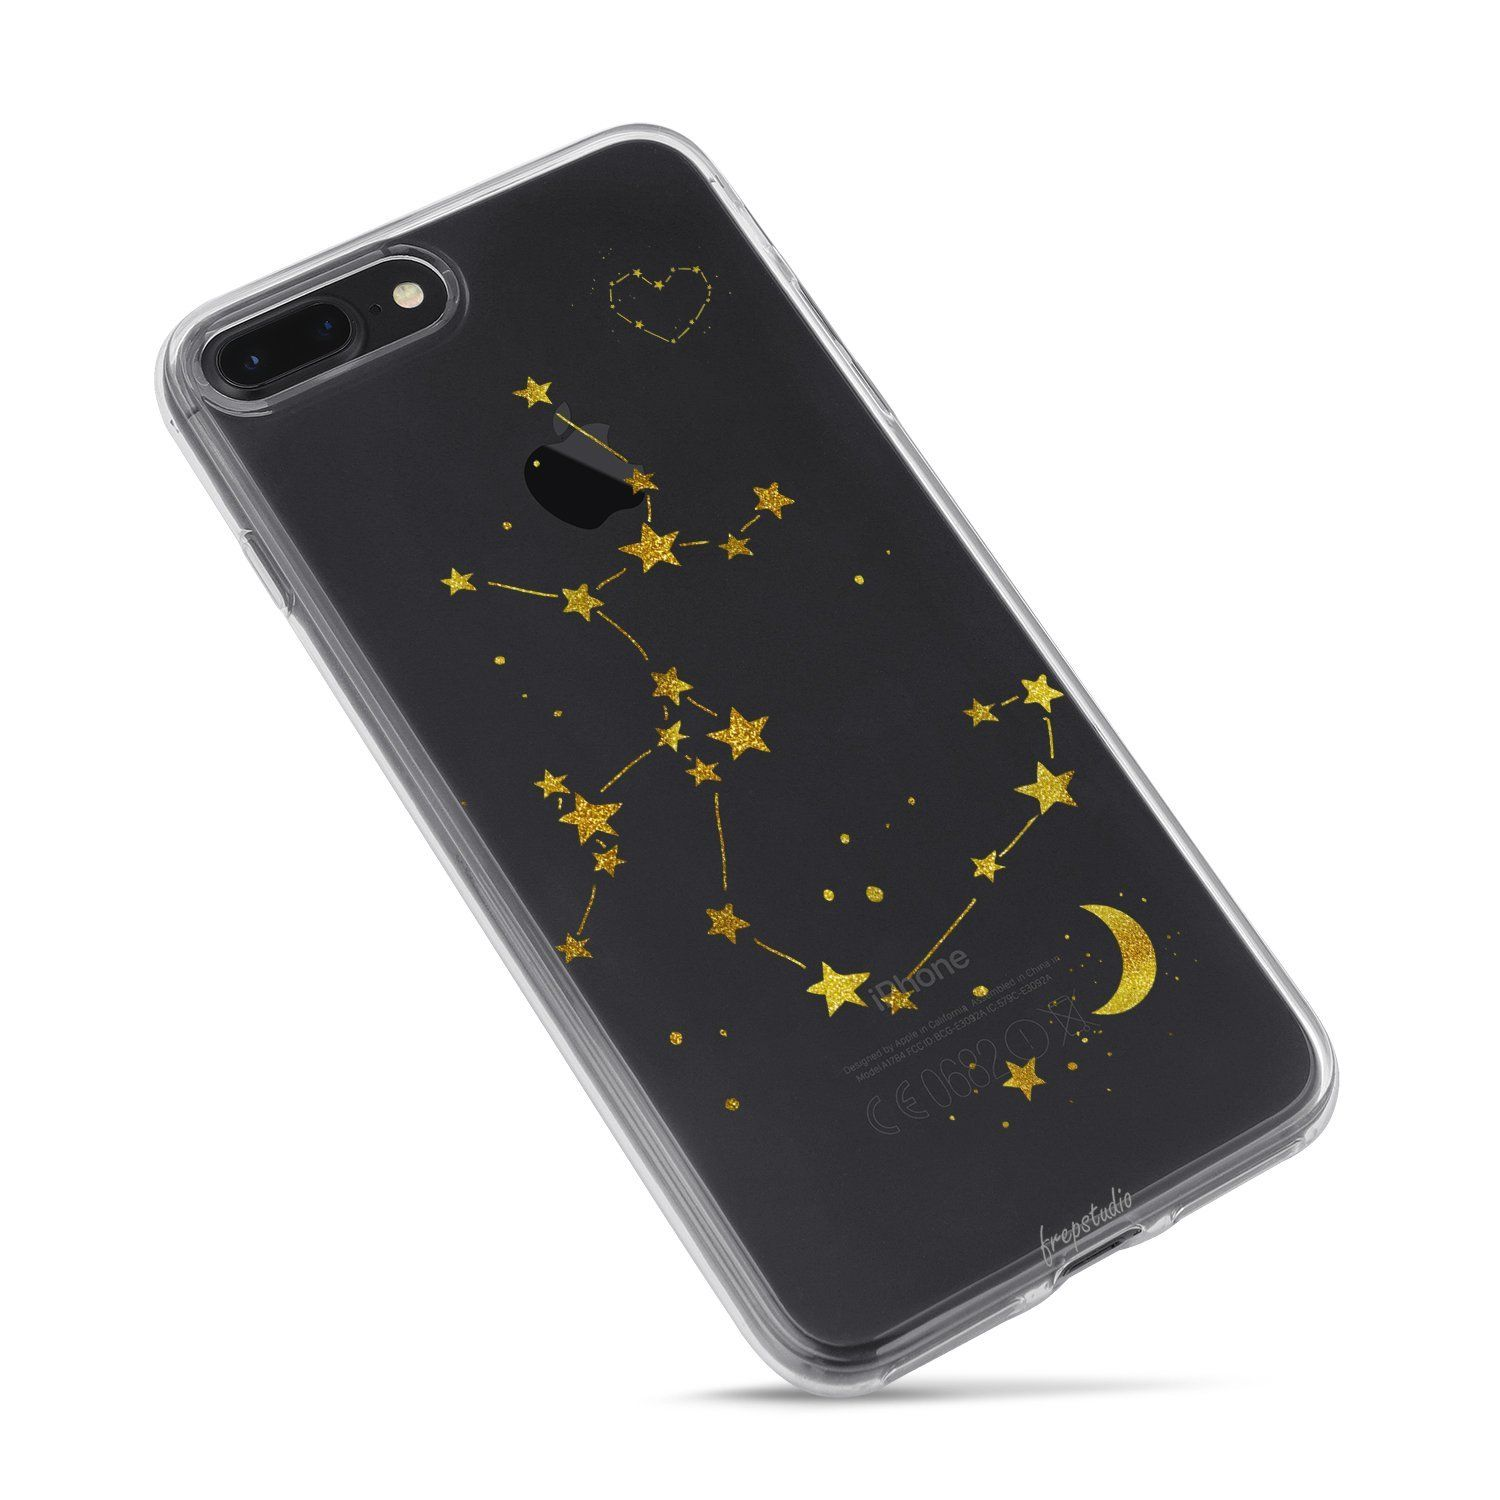 finest selection e6eef 42490 iPhone 8 Plus Case Galaxy Zodiac,Cute Sagittarius iPhone 8 Plus ...